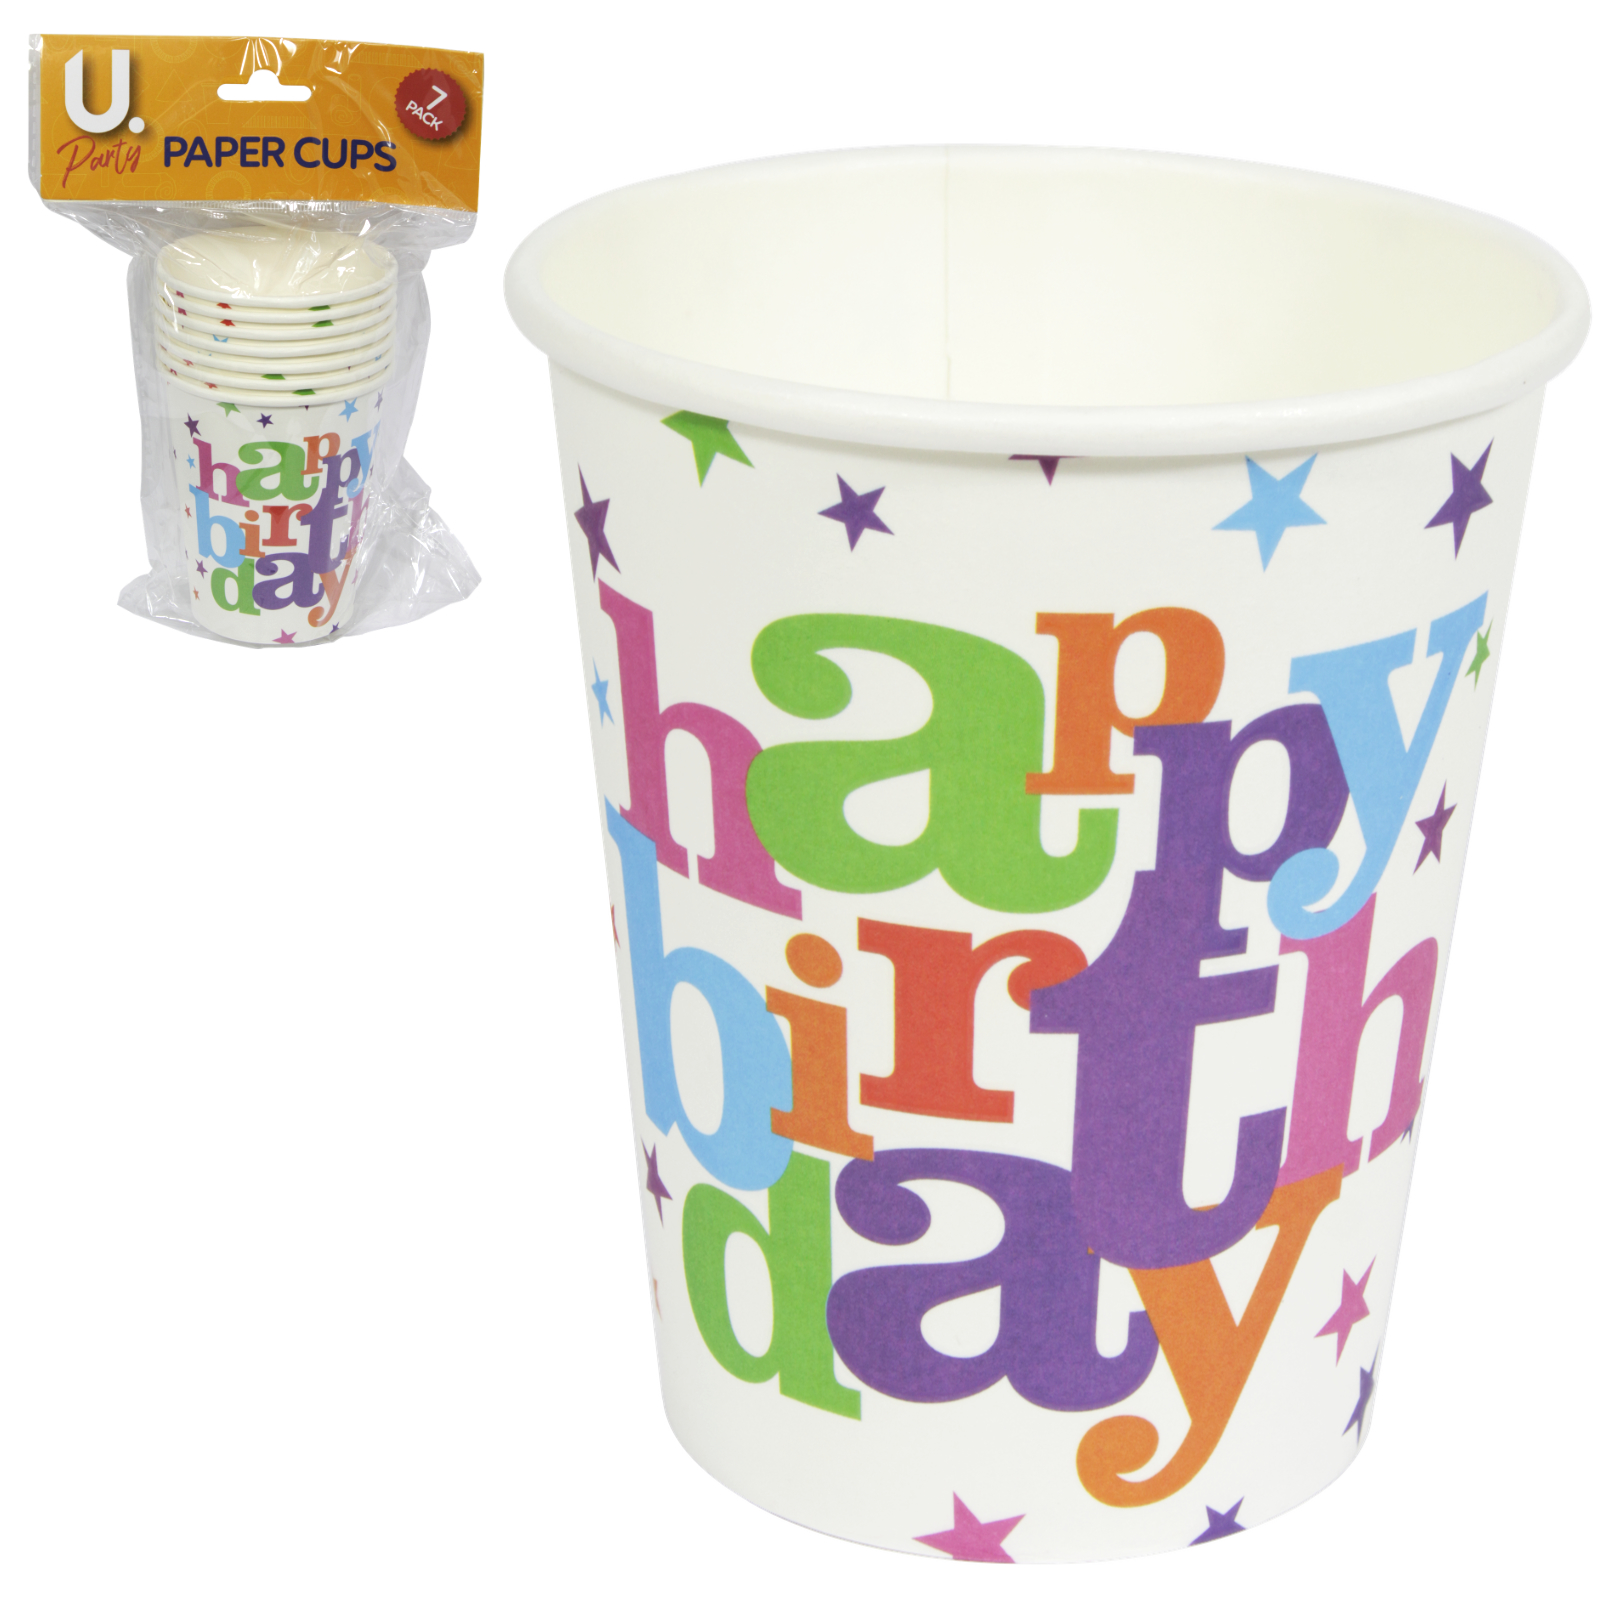 HAPPY BIRTHDAY PARTY CUPS 8S